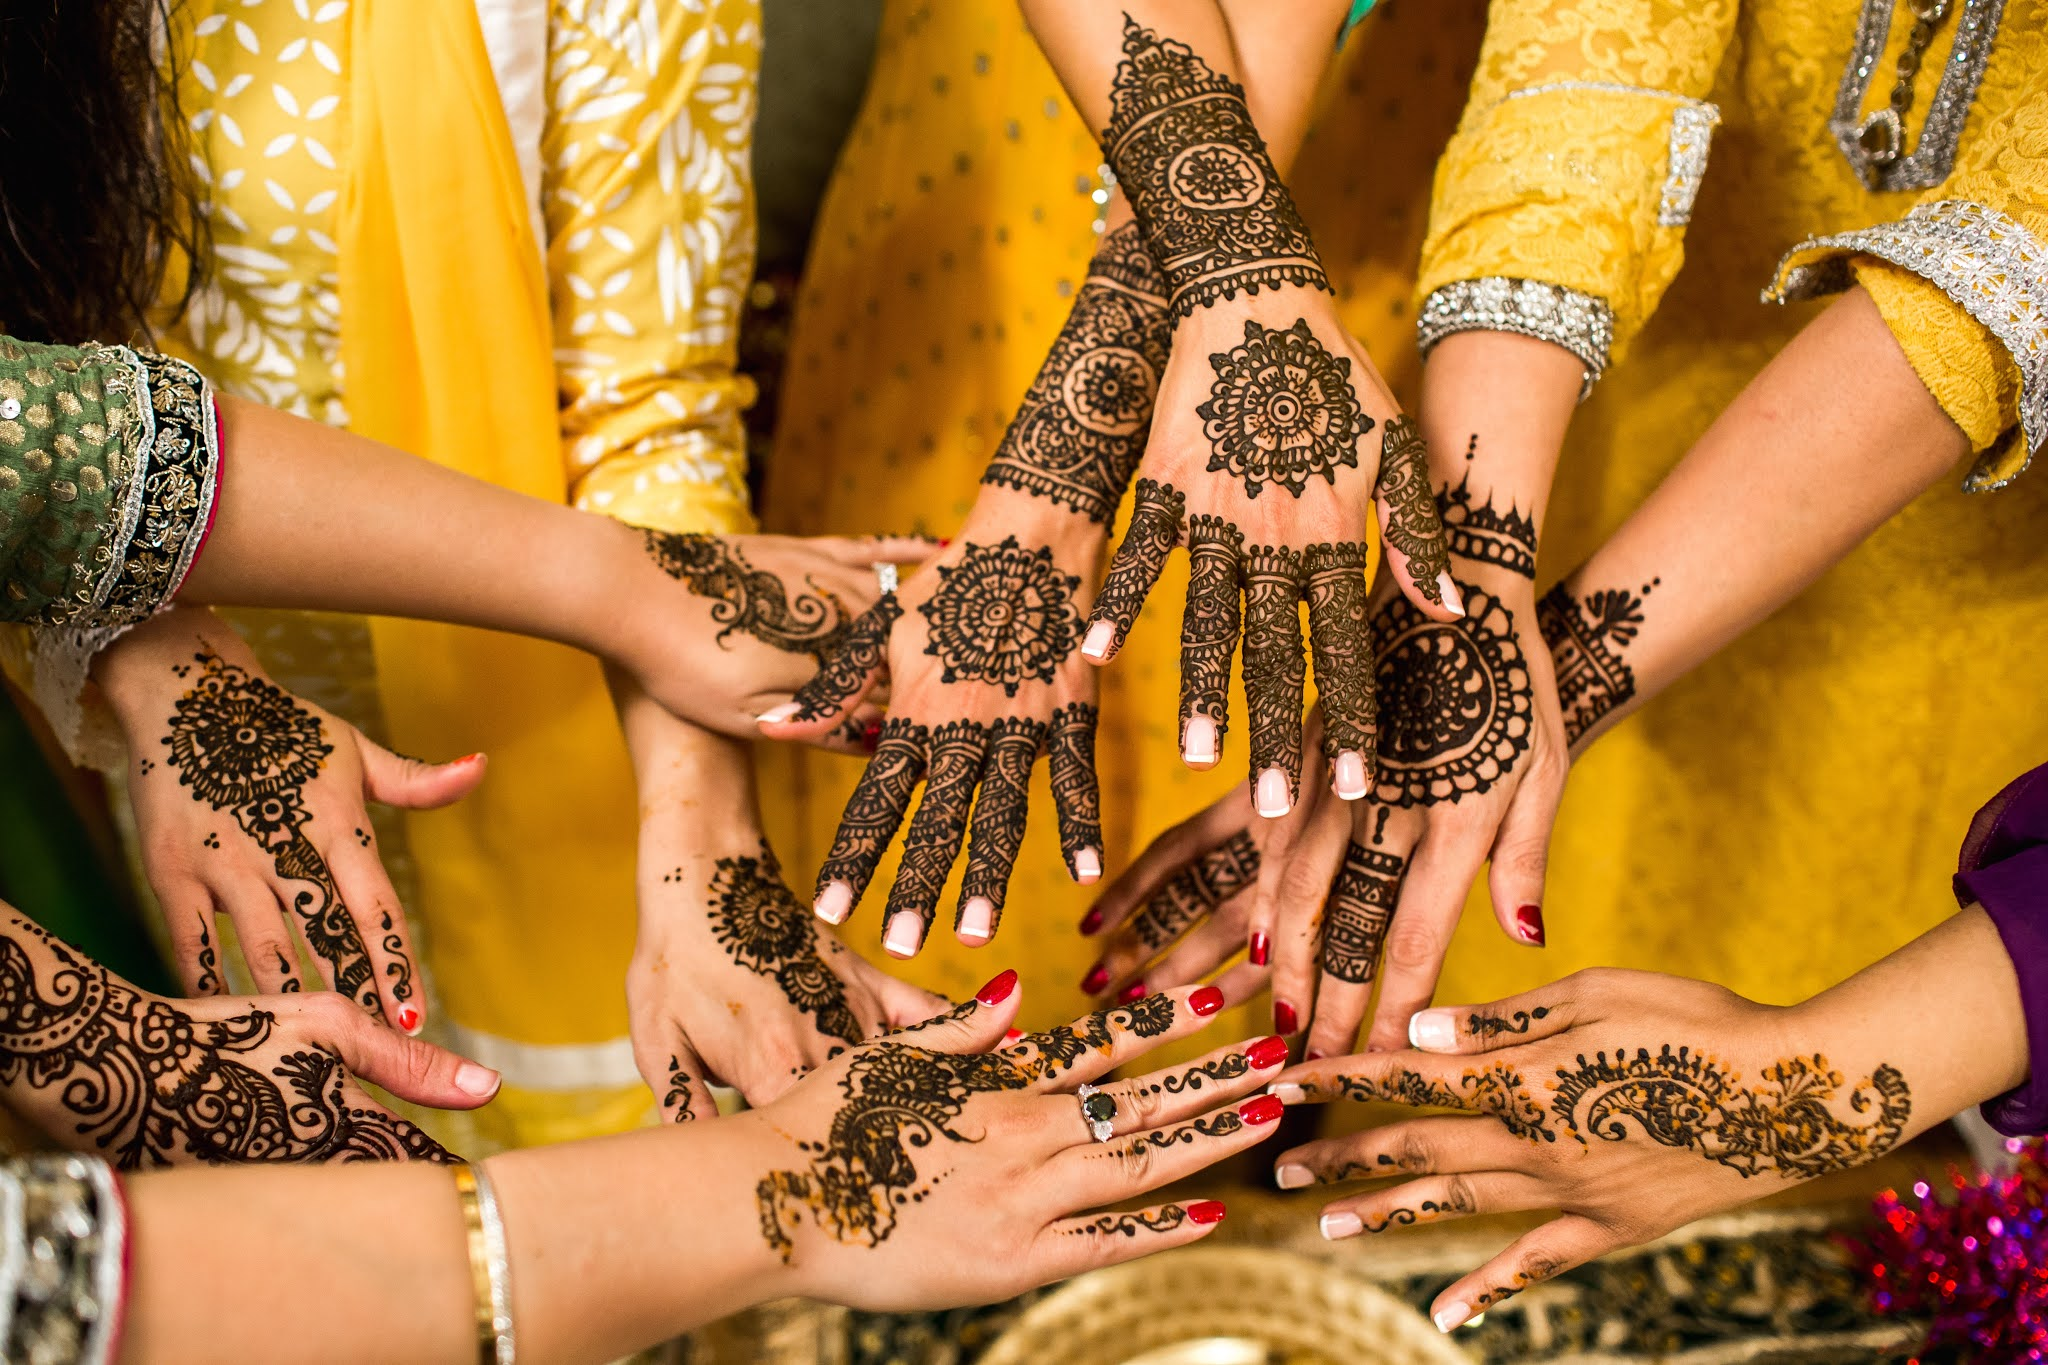 Why do we apply henna on hands and feet?